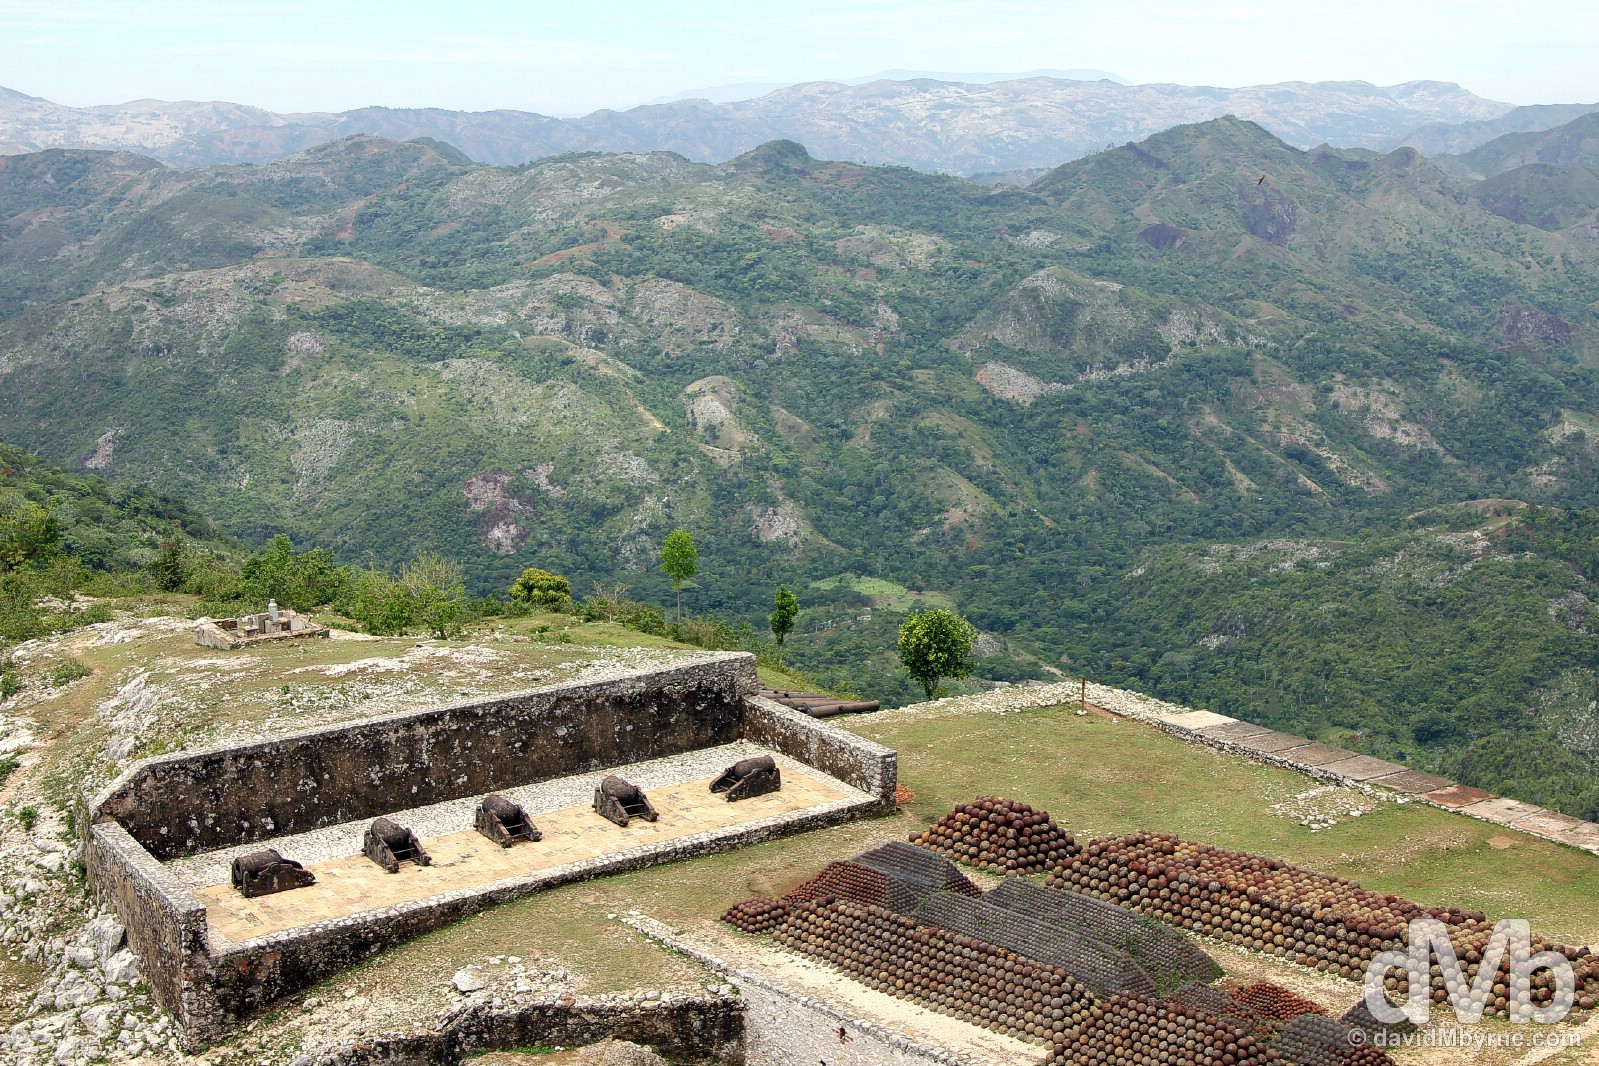 The Haitian countryside as seen from the UNESCO-listed Citadelle Laferrière in northern Haiti, Hispaniola, Greater Antilles. May 22, 2015.